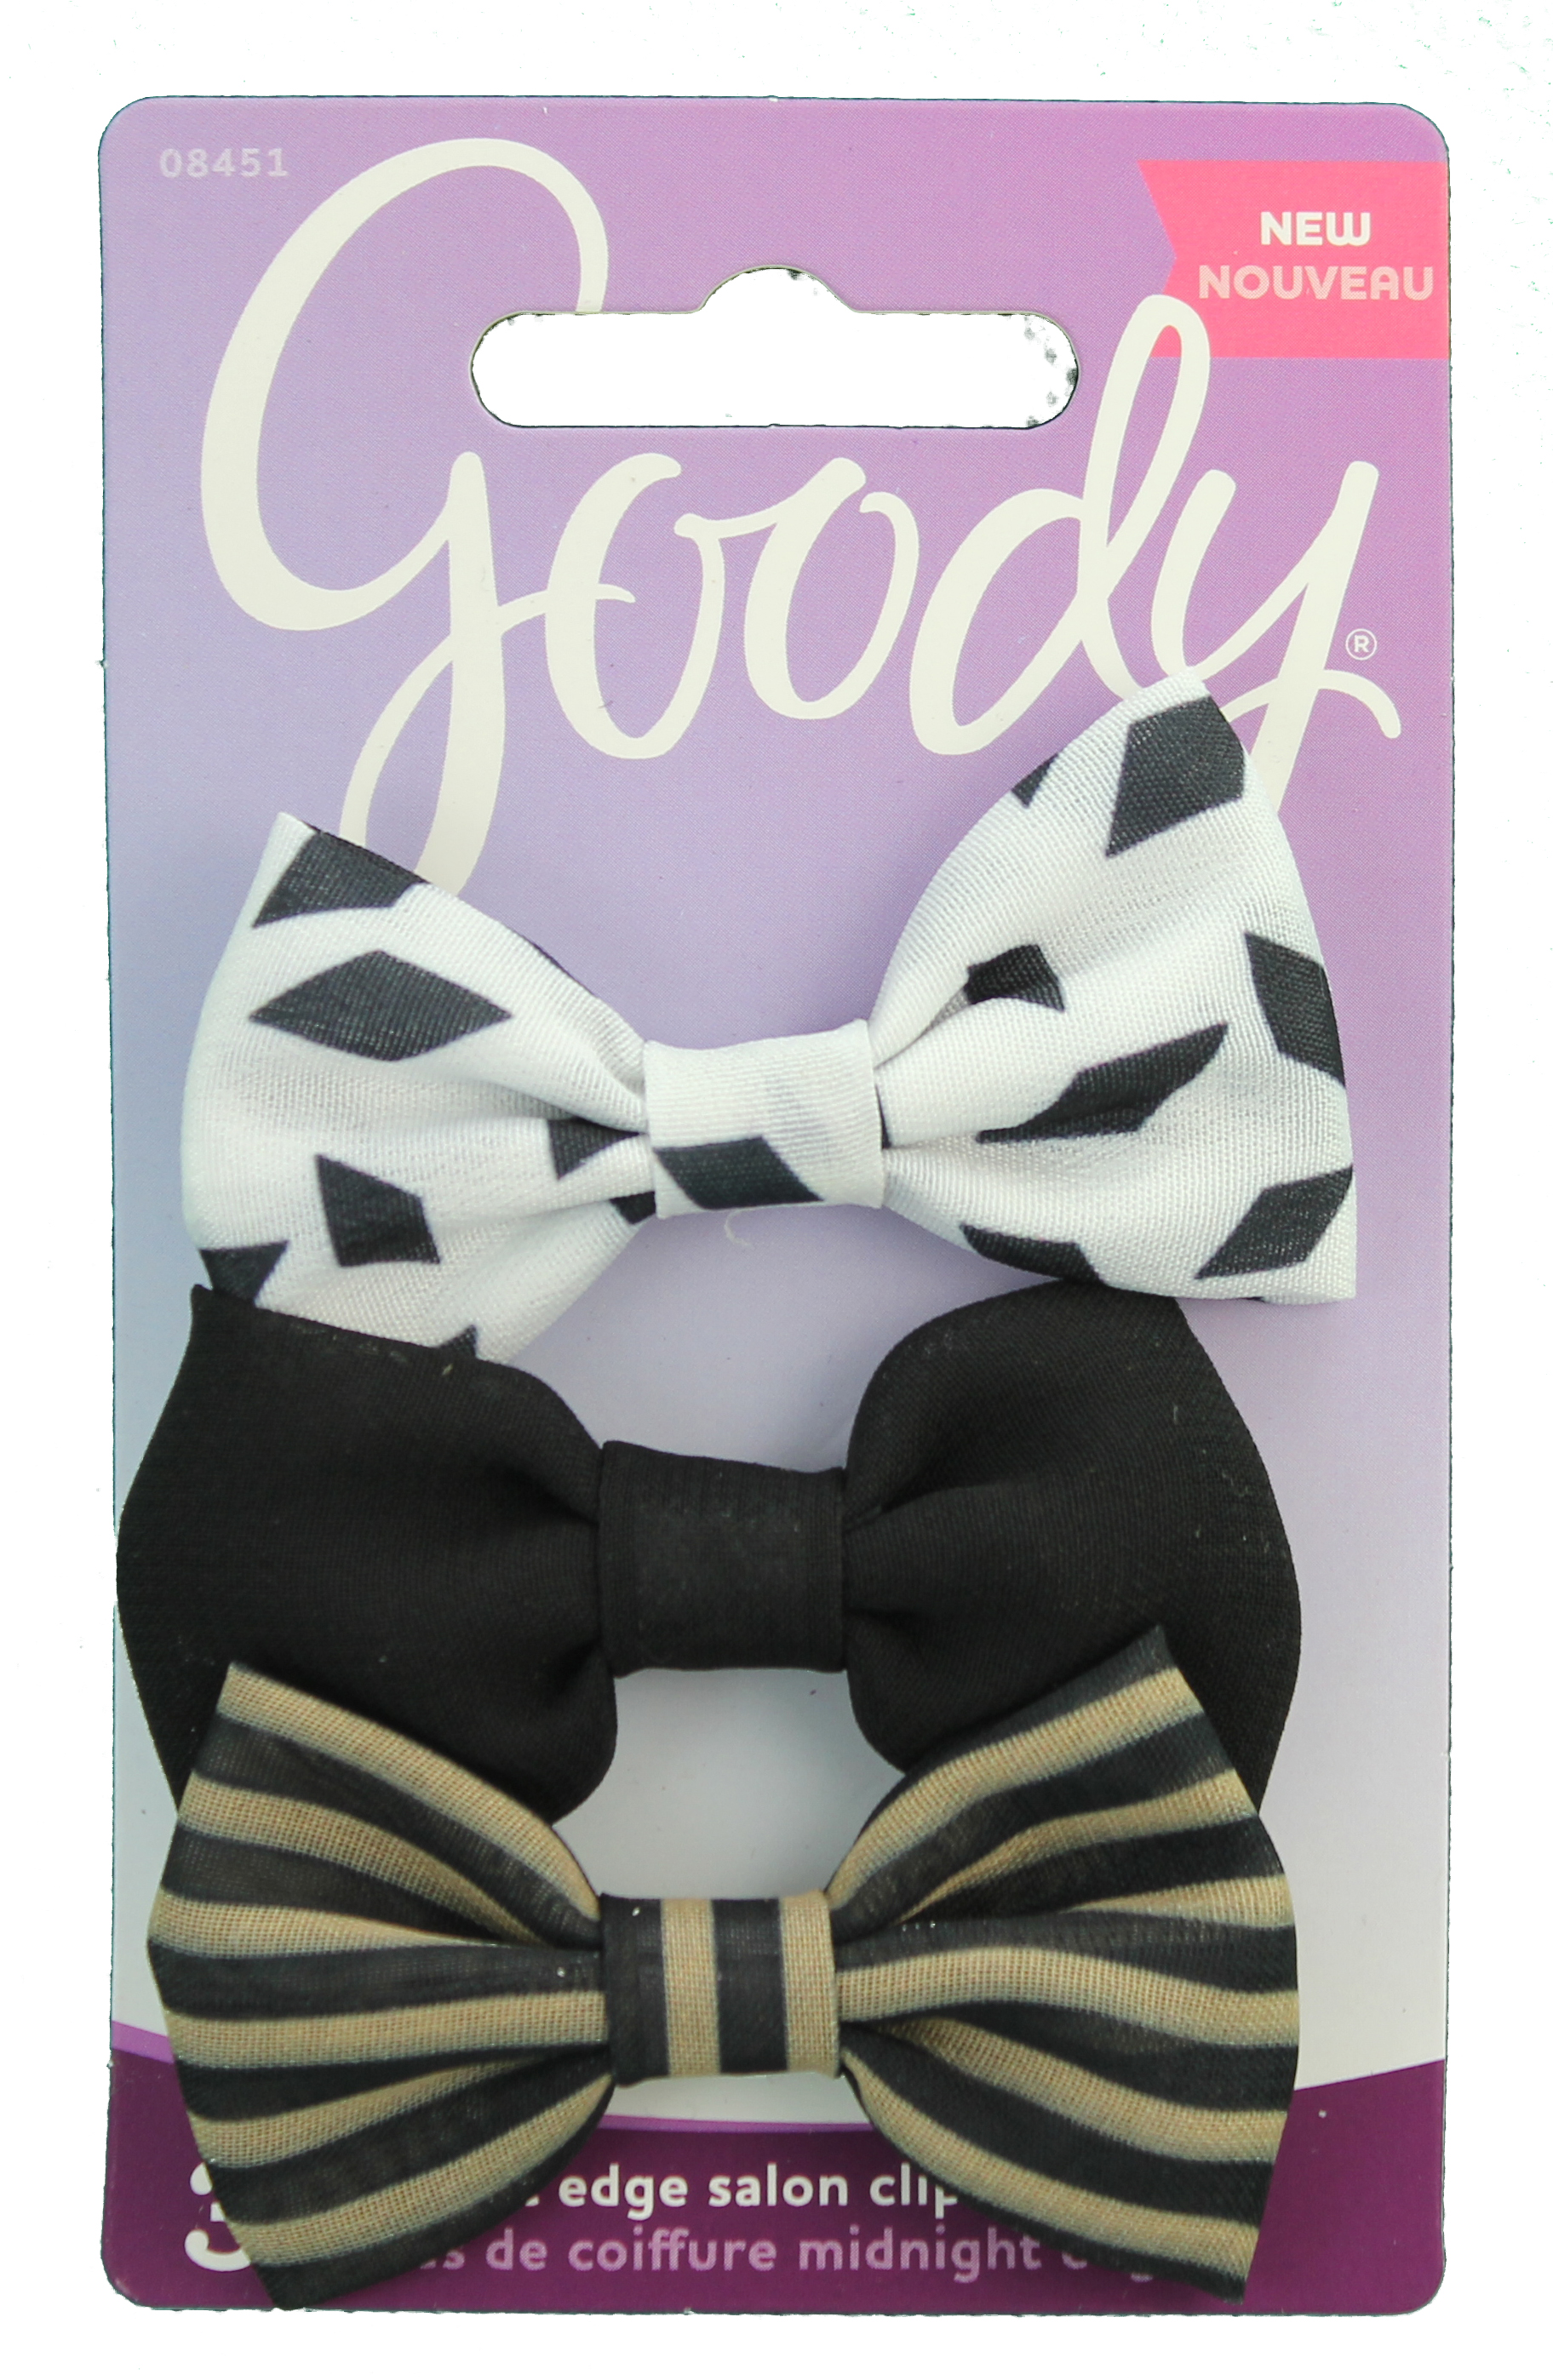 Goody Corporate Fashionow Midnight Edge Mixed Bow Salon Clips, 3 CT